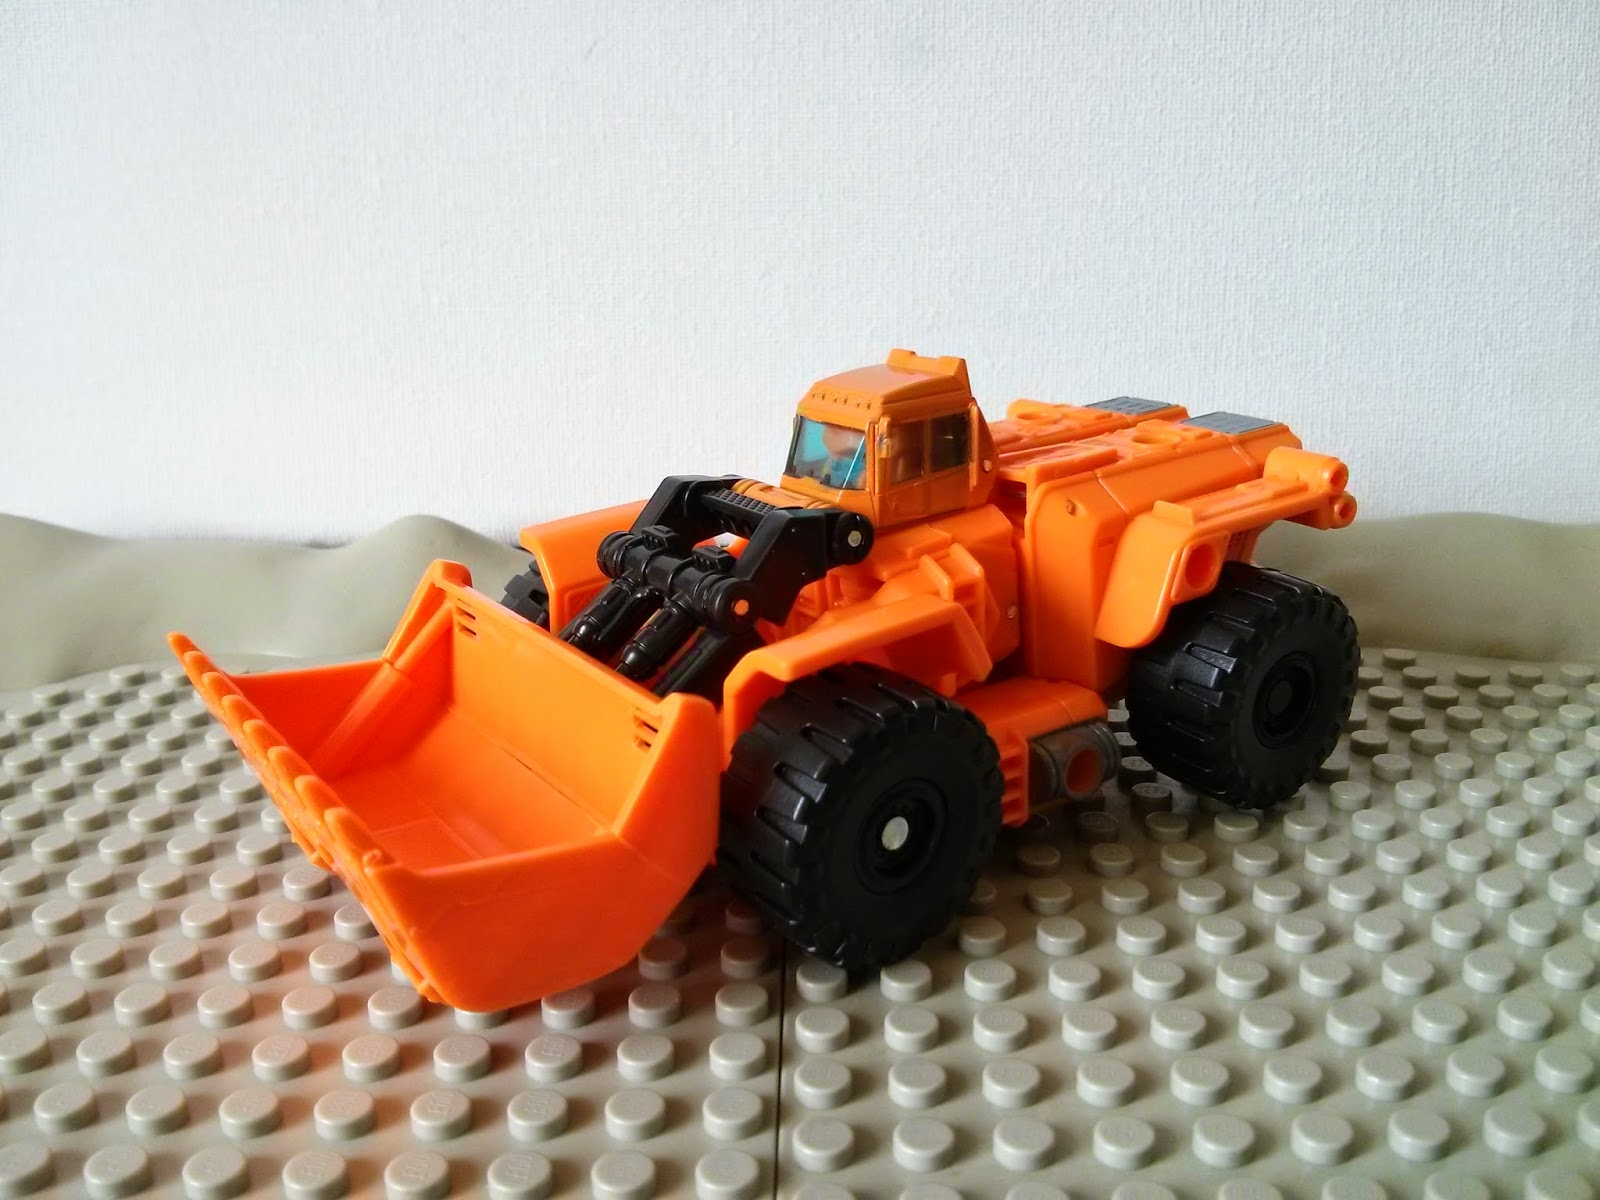 a side view of scoops alt mode